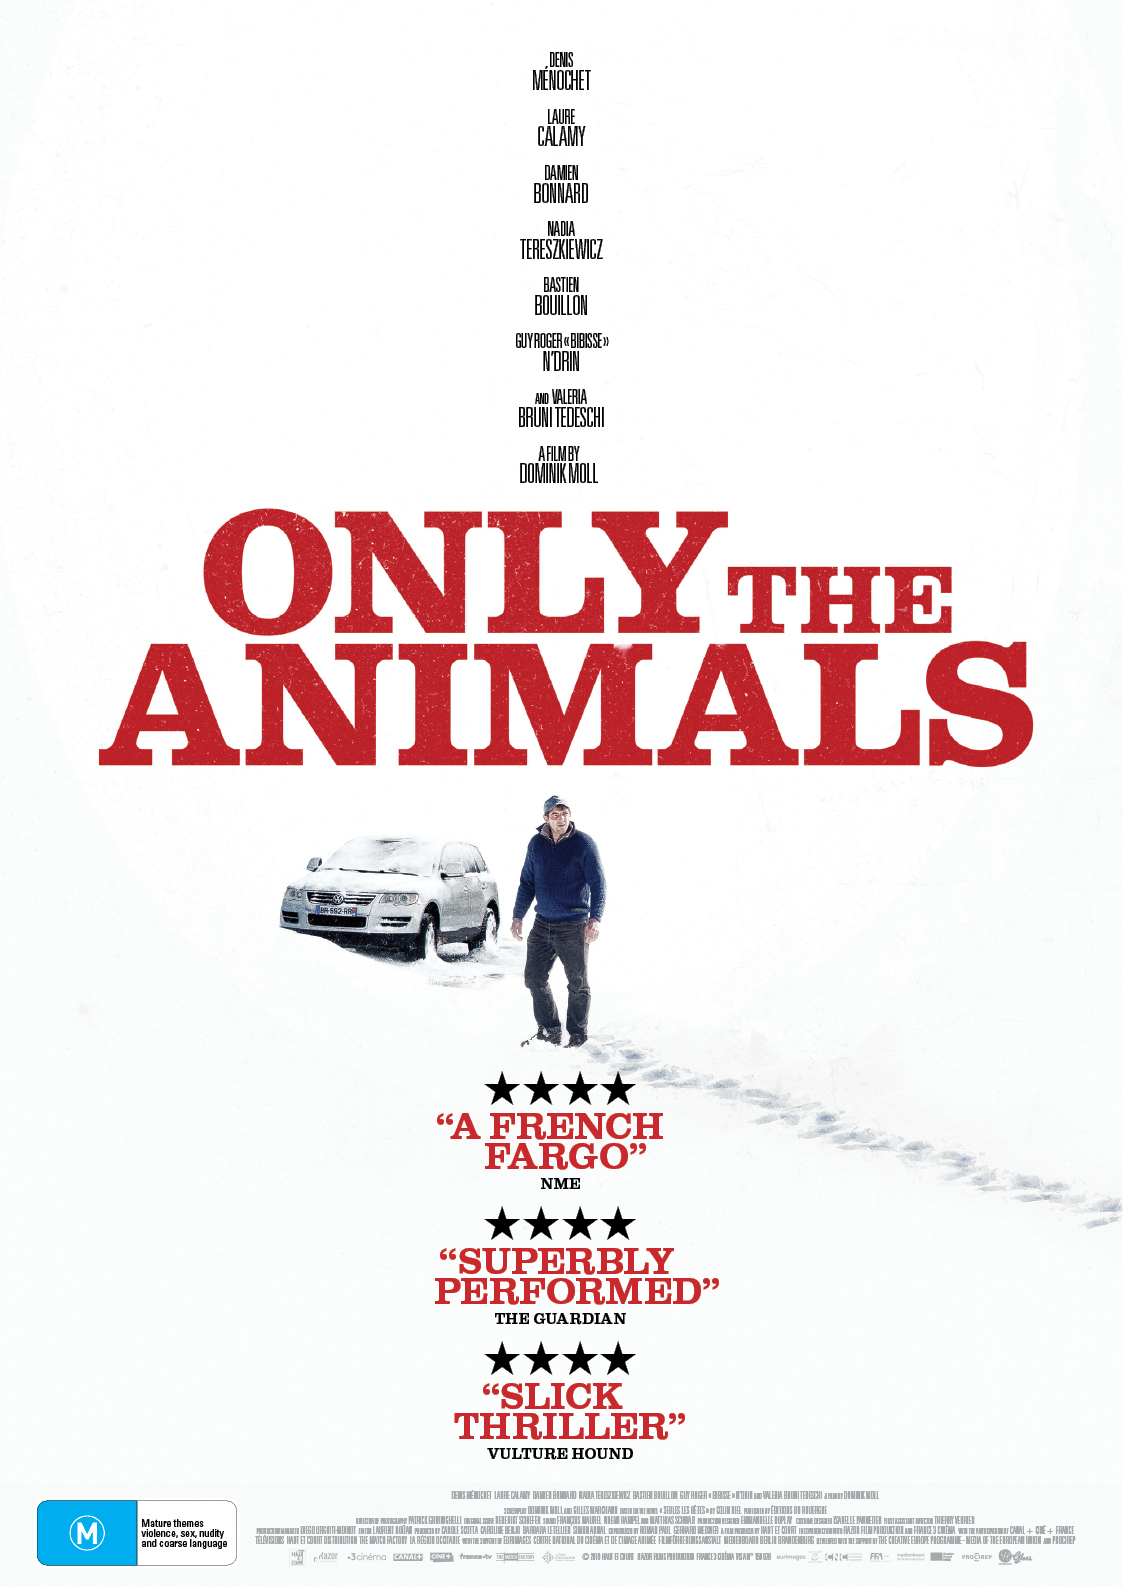 Only the Animals movie poster